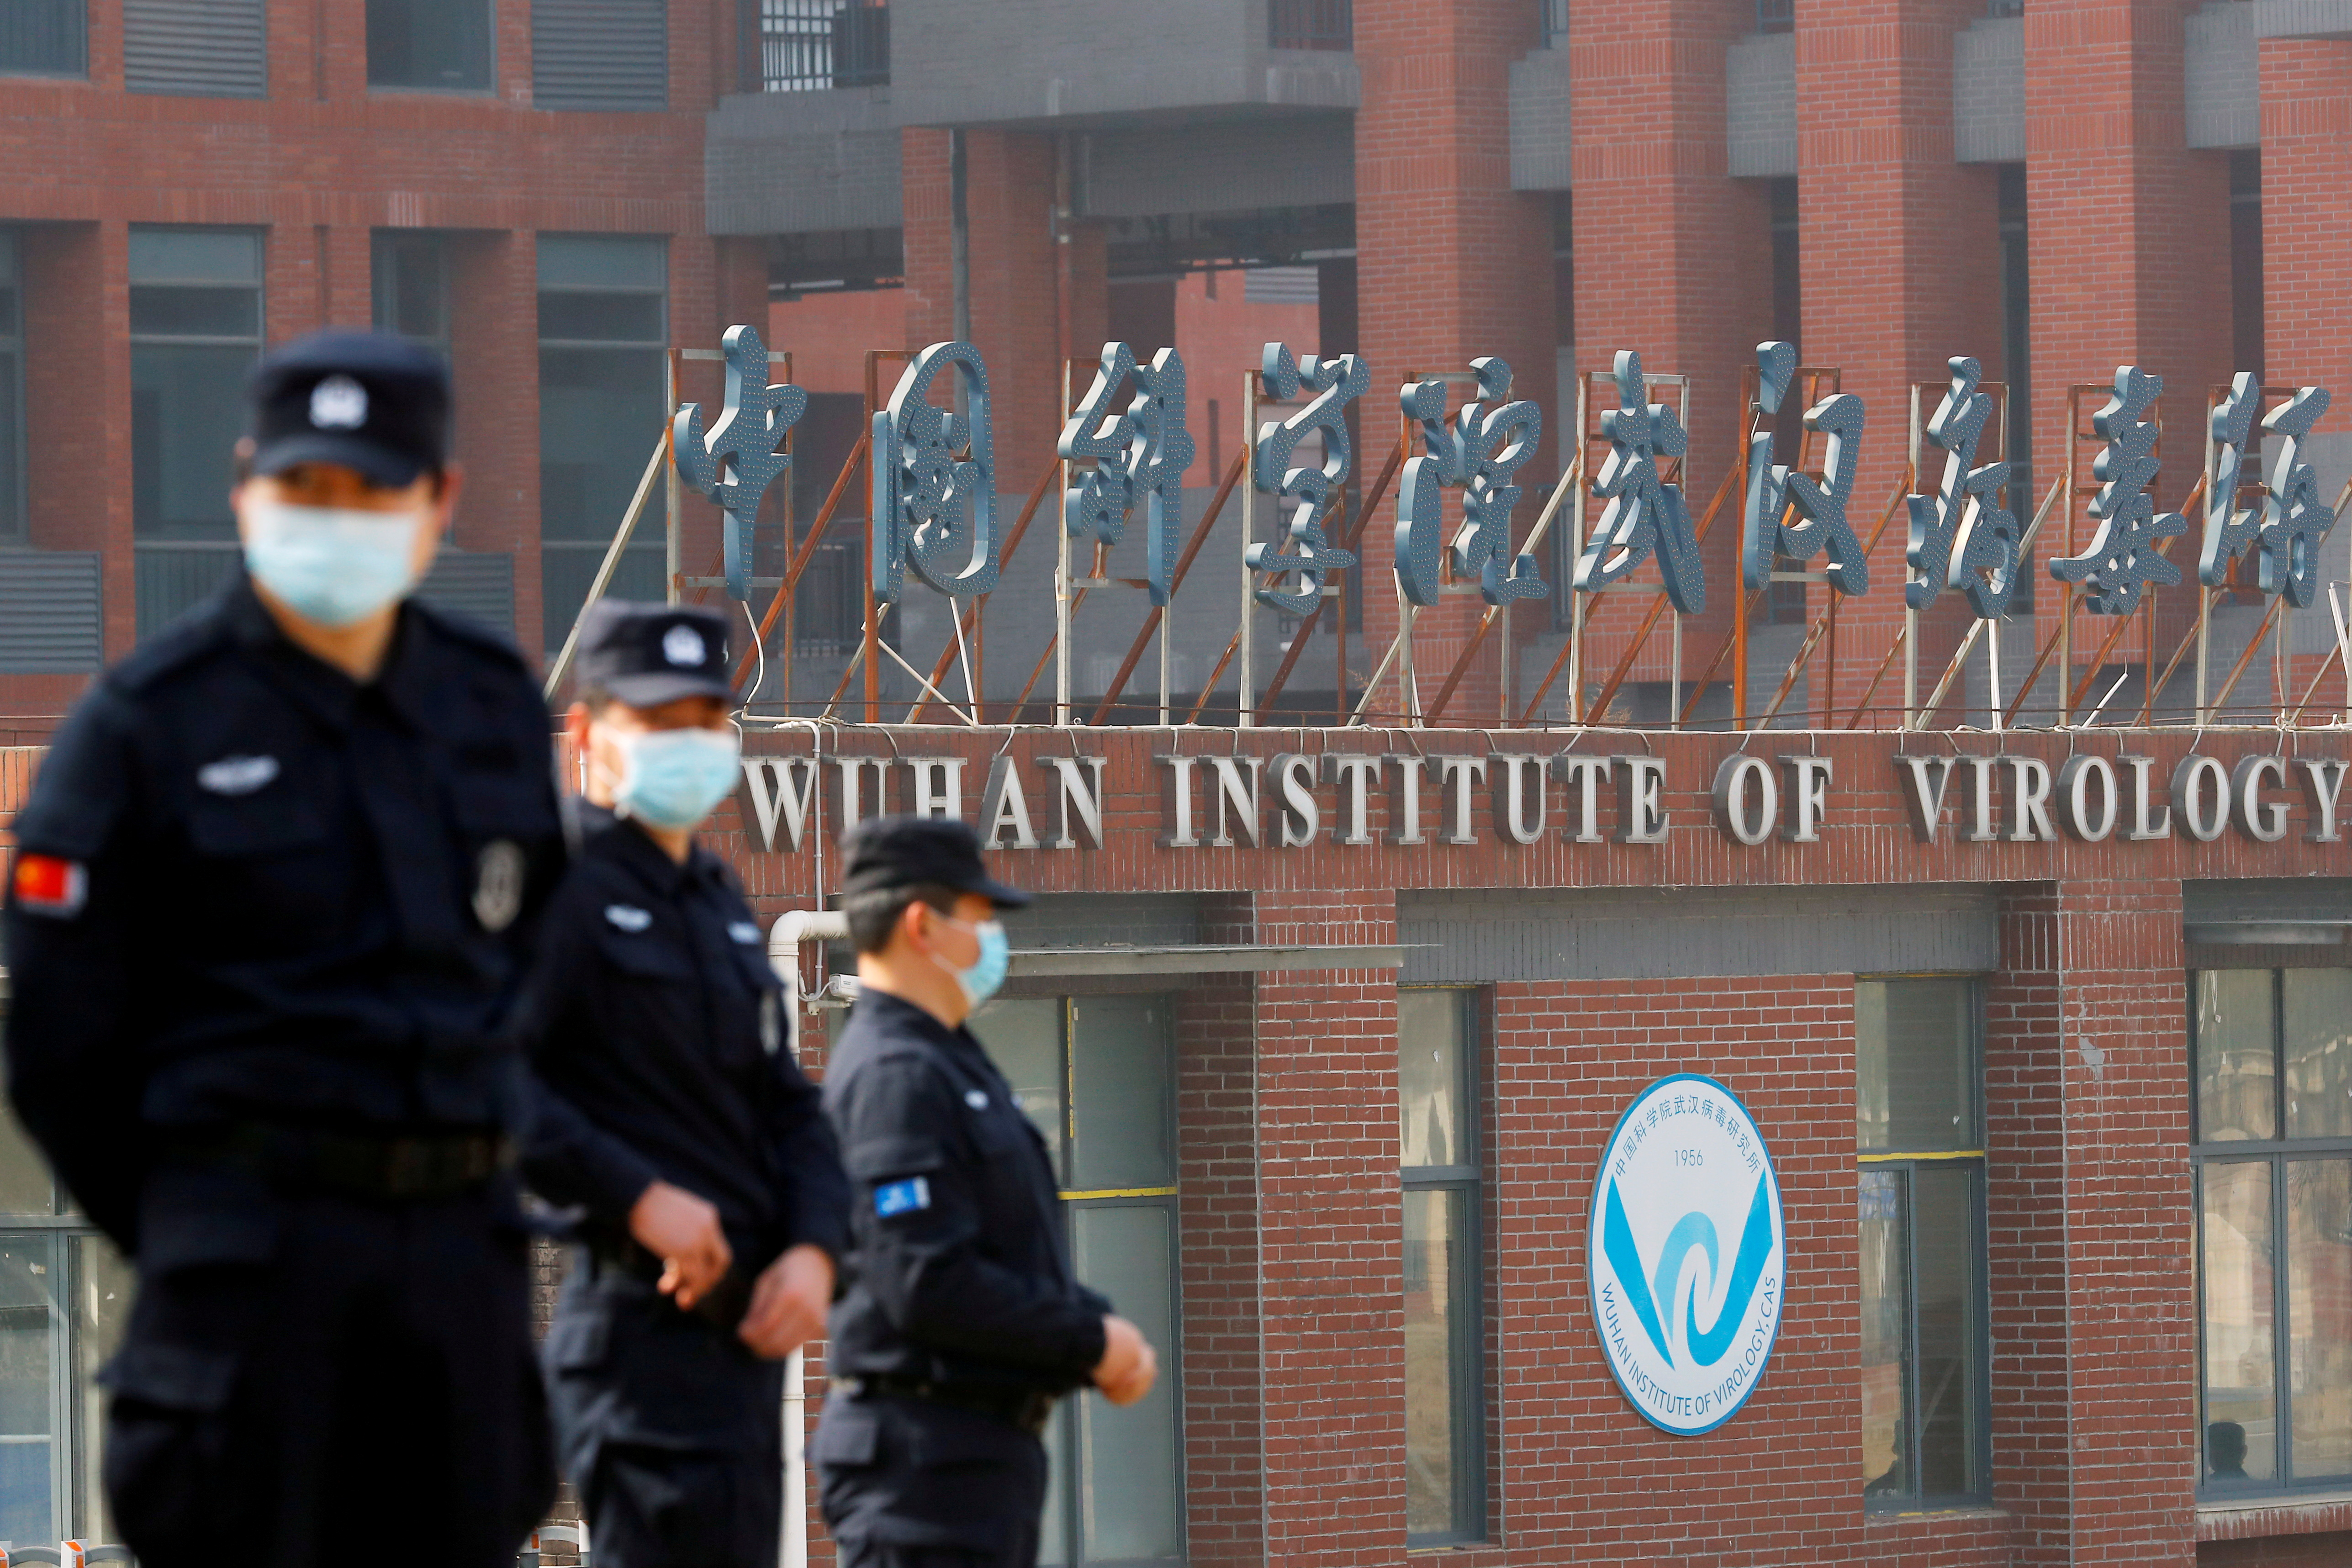 Security personnel keep watch outside the Wuhan Institute of Virology during the visit by the World Health Organization (WHO) team tasked with investigating the origins of the coronavirus disease (COVID-19), inWuhan, Hubei province, China February 3, 2021. REUTERS/Thomas Peter/File Photo